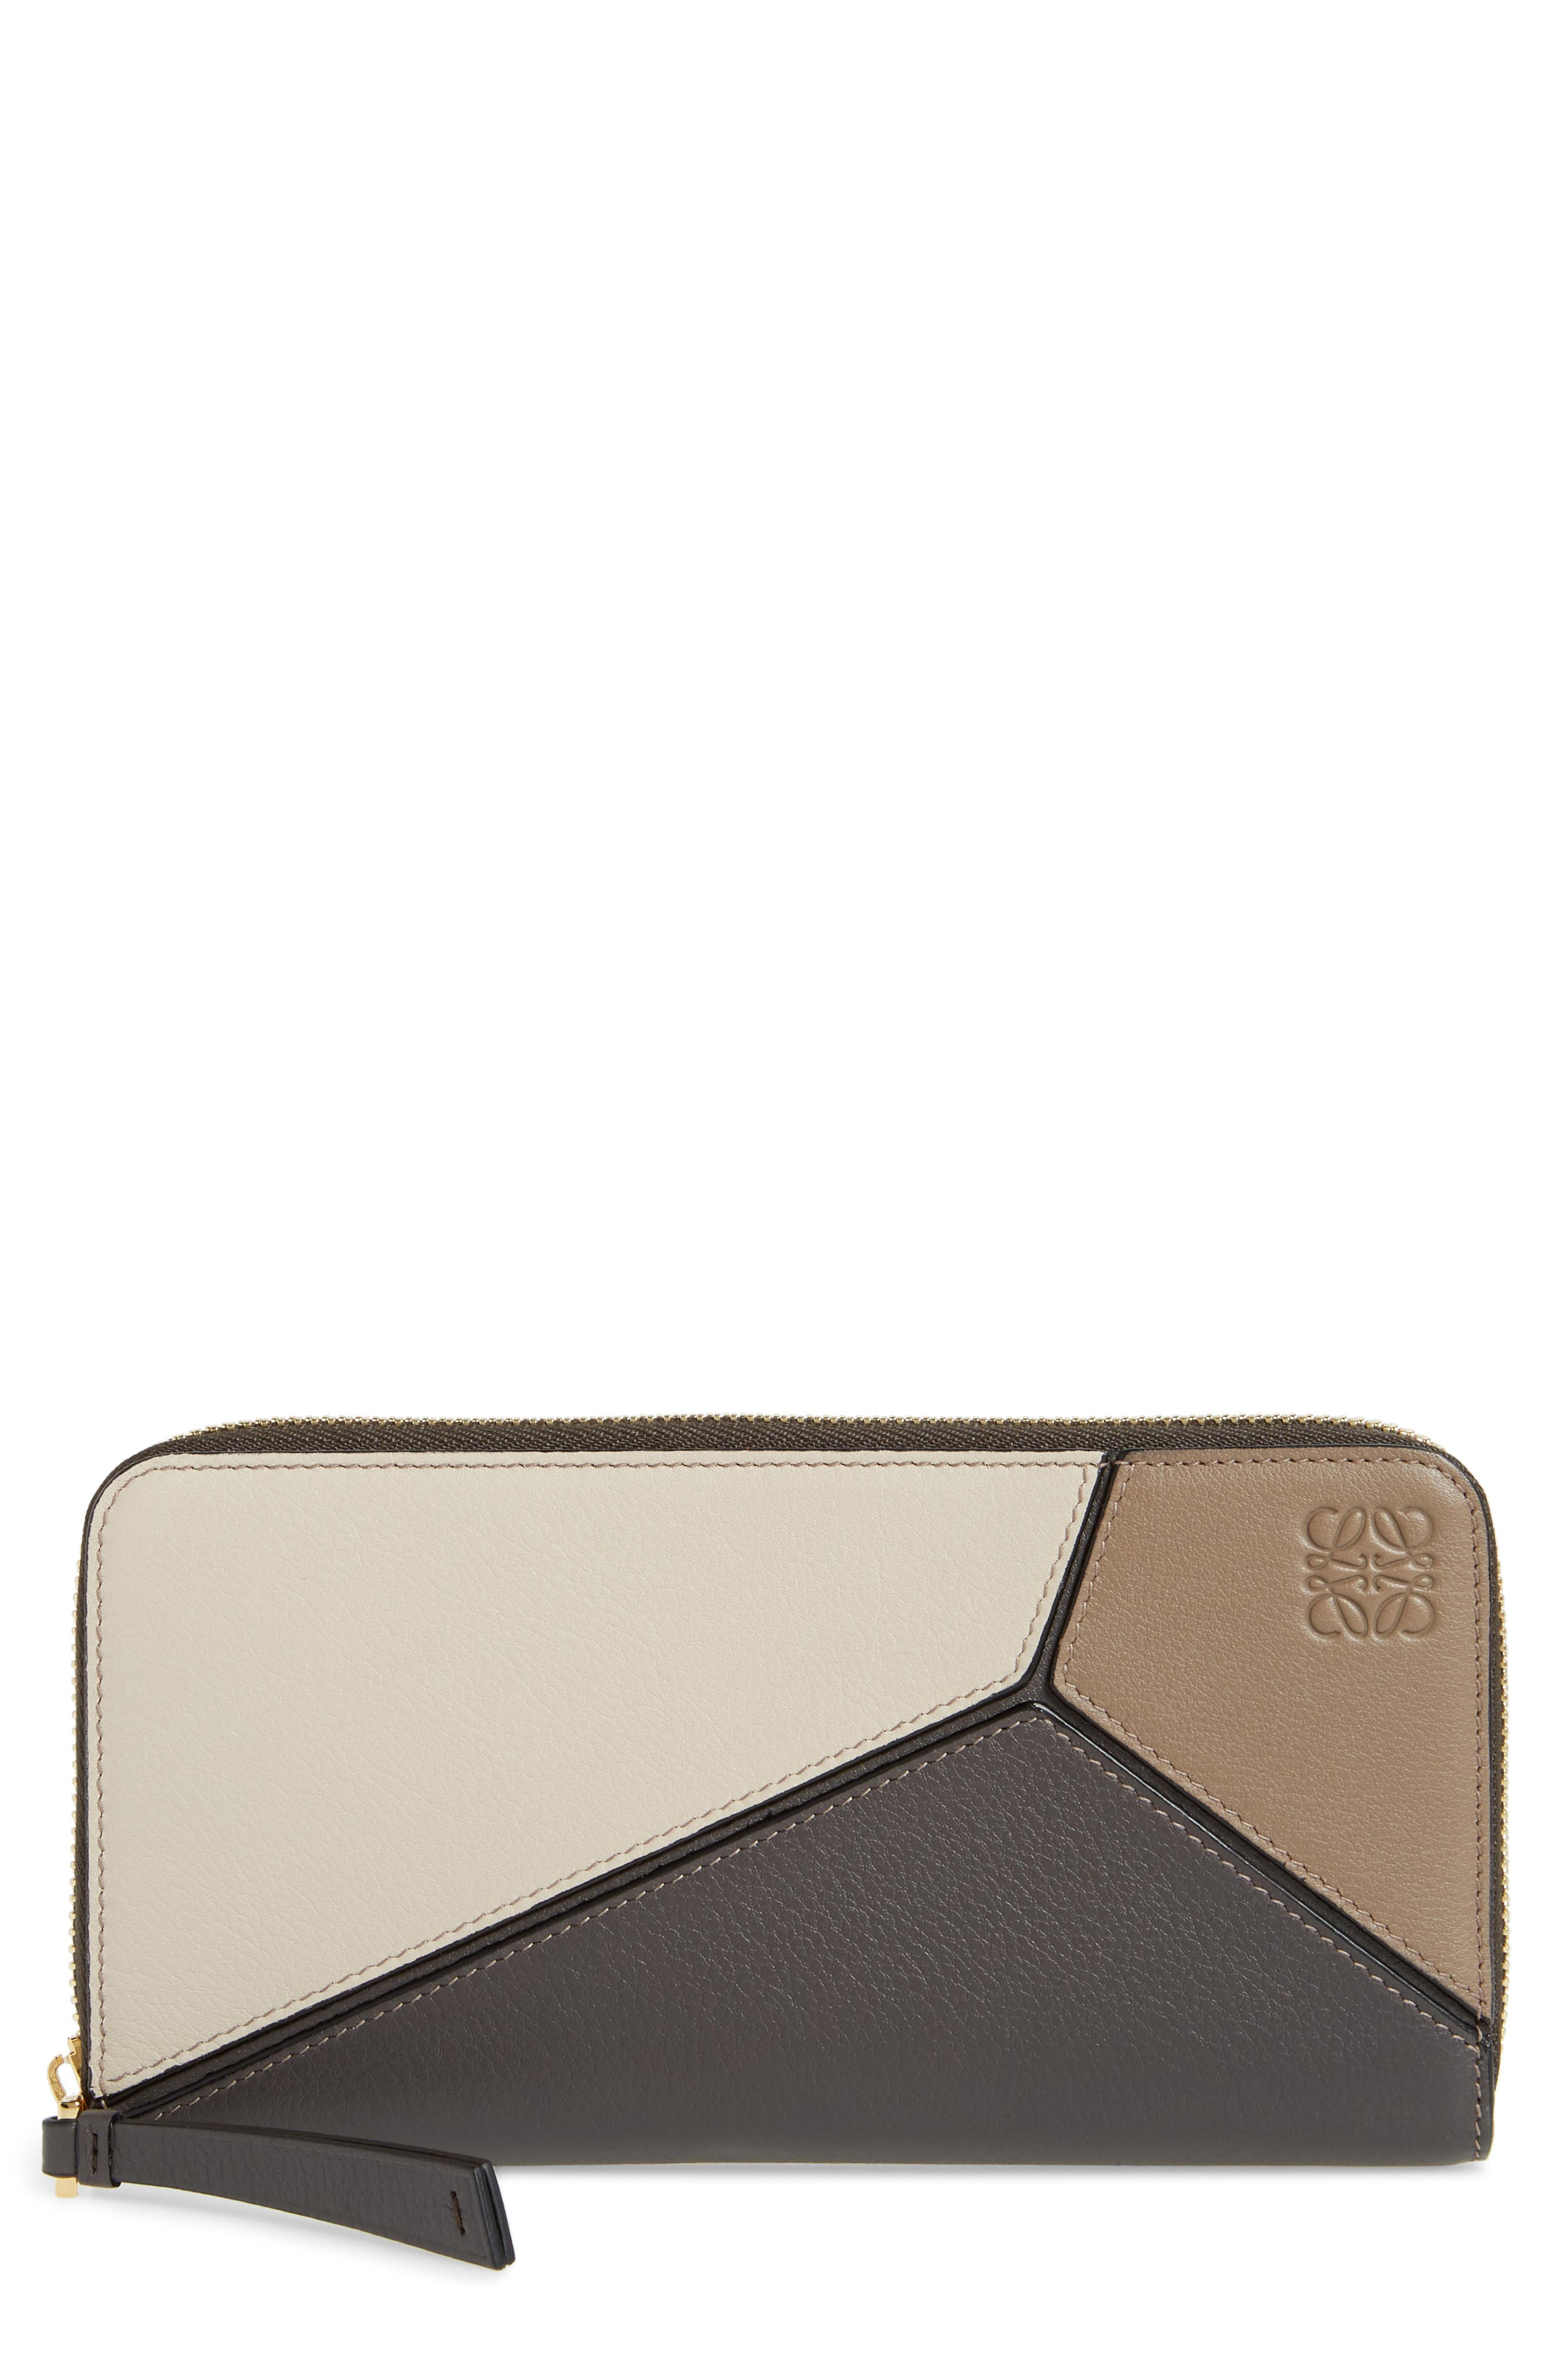 Main Image - Loewe Puzzle Leather Zip Around Wallet